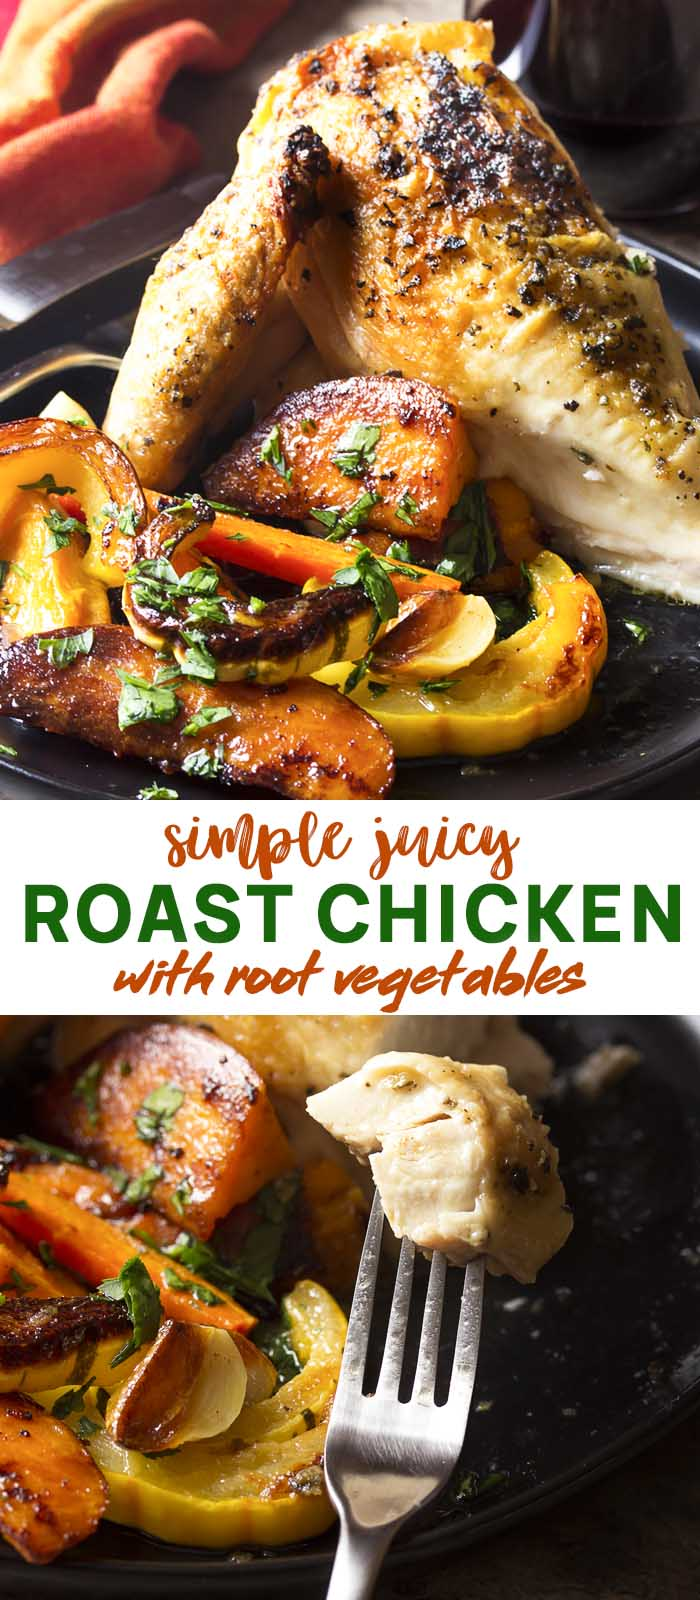 Two view of roasted chicken and vegetables with text overlay - Roast Chicken.